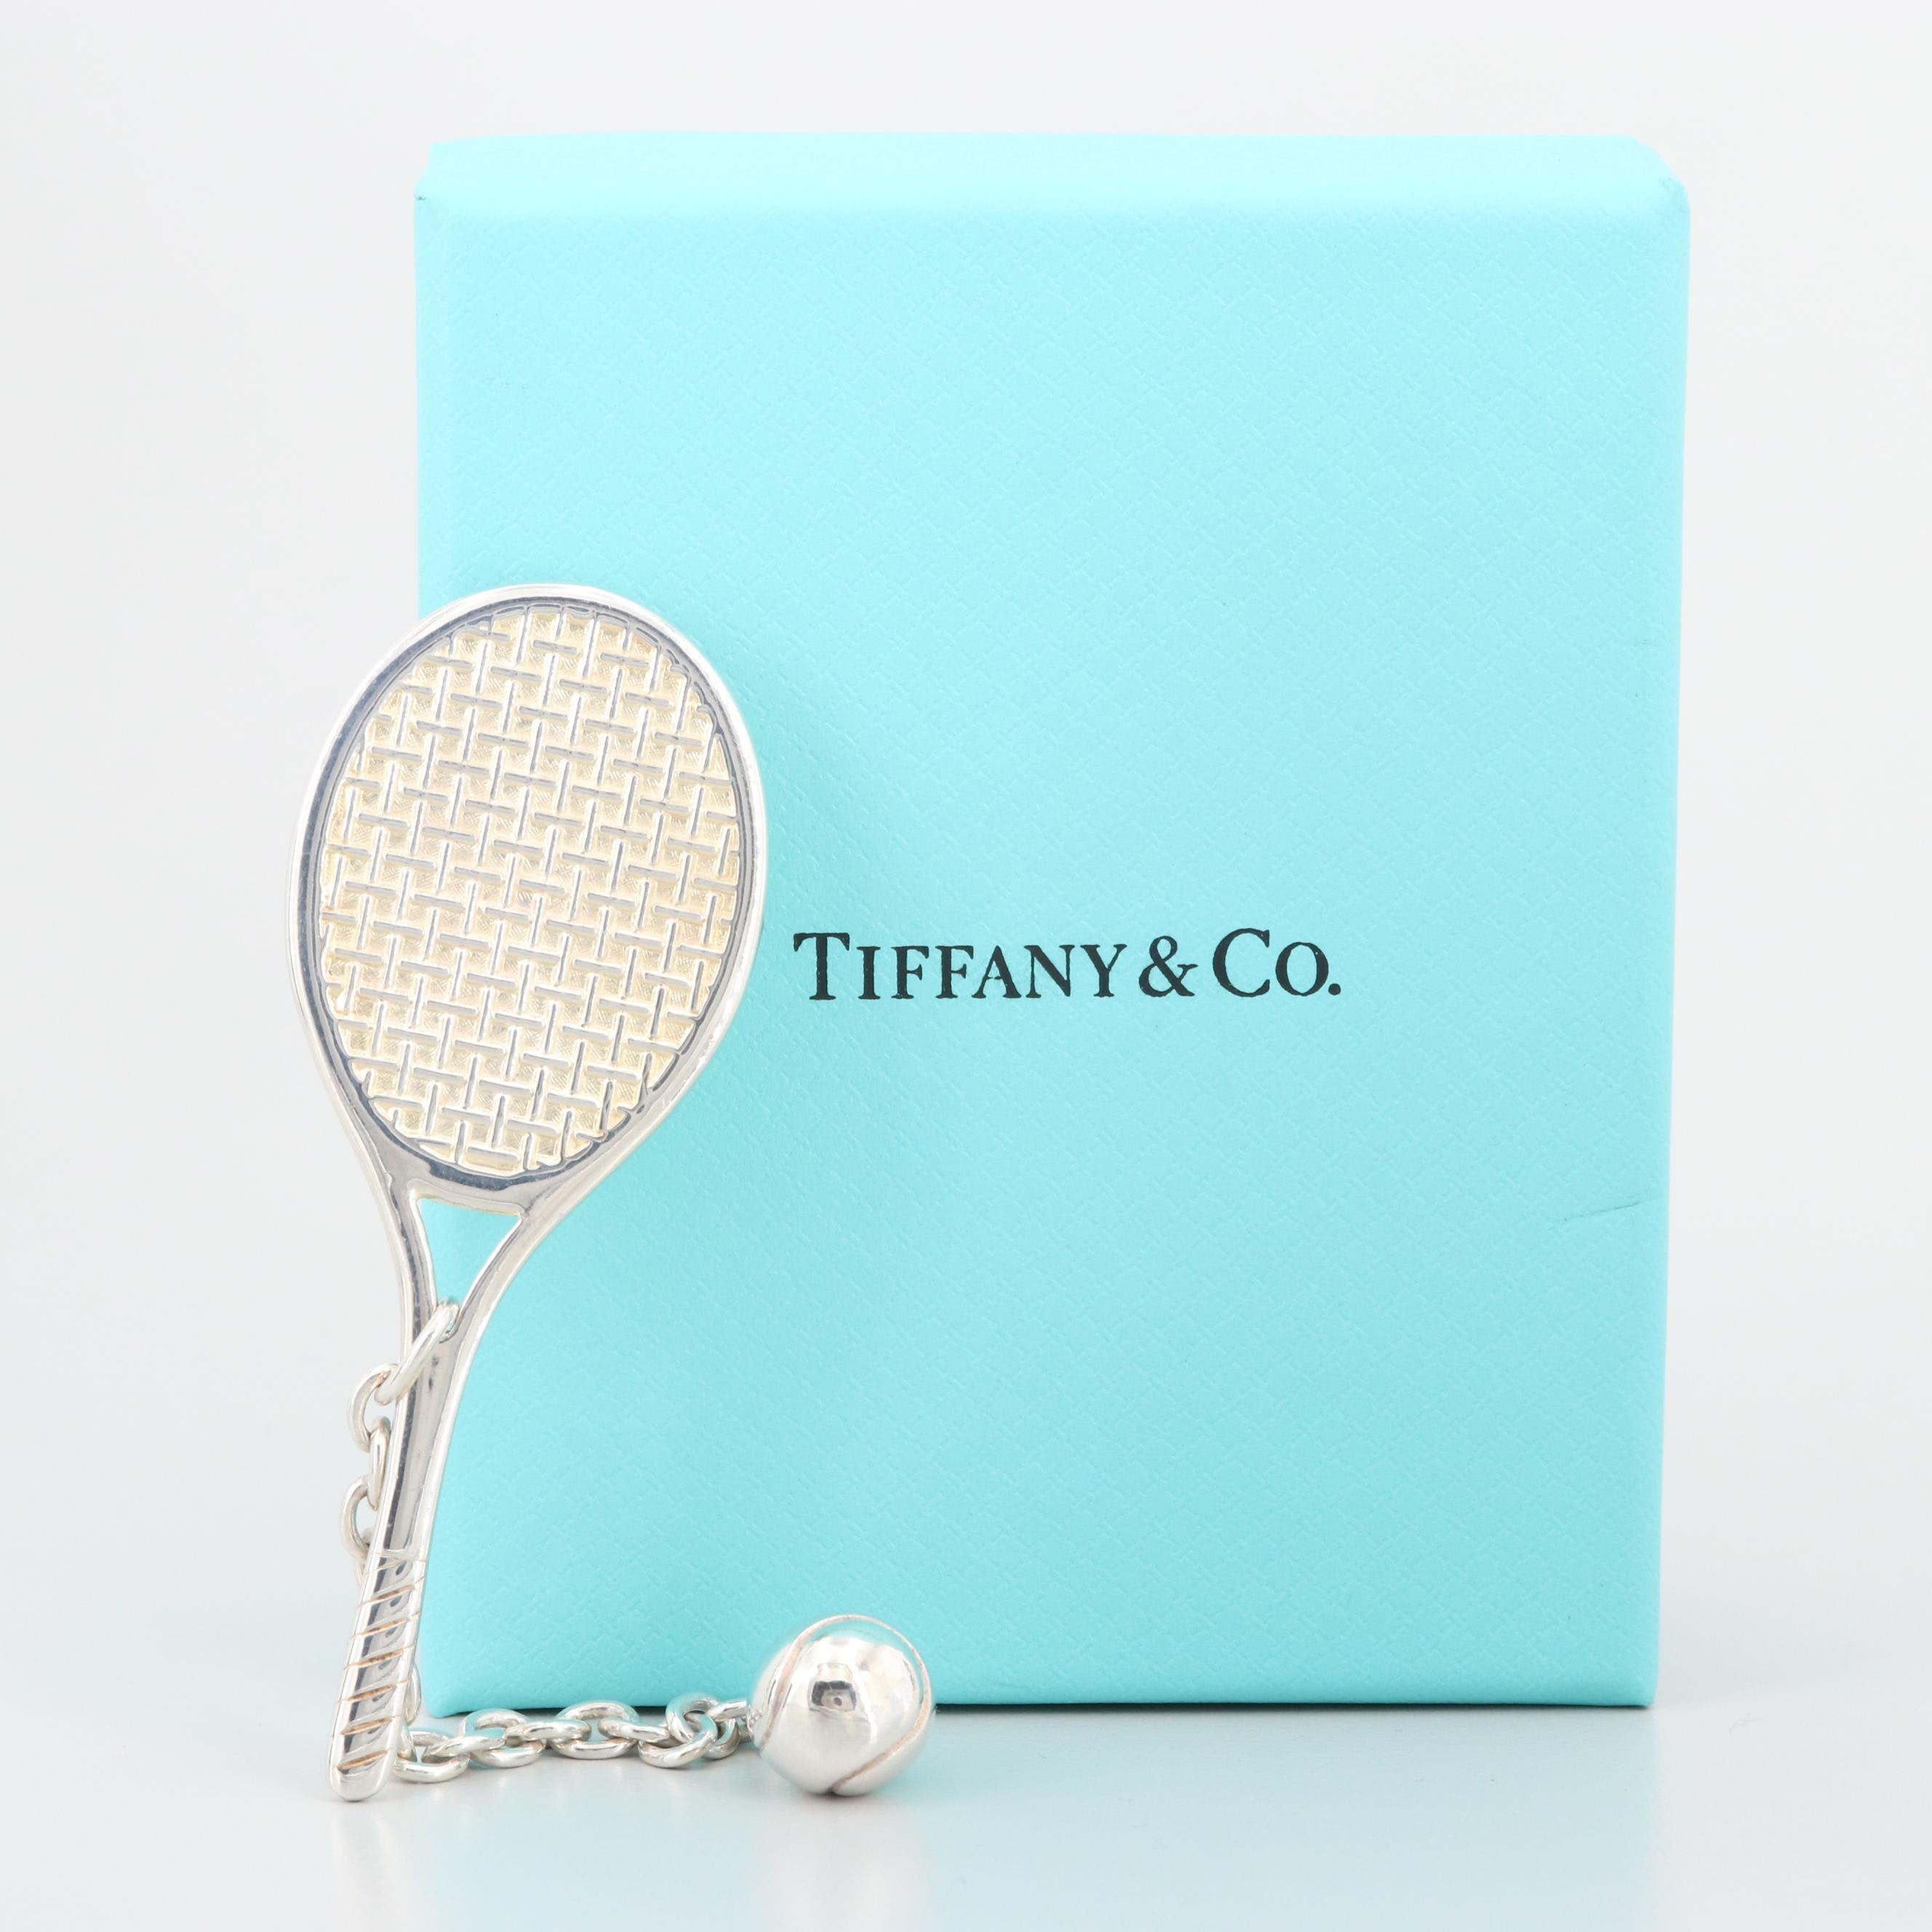 Tiffany & Co Sterling Silver Tennis Racket Key Chain with Pouch and Box